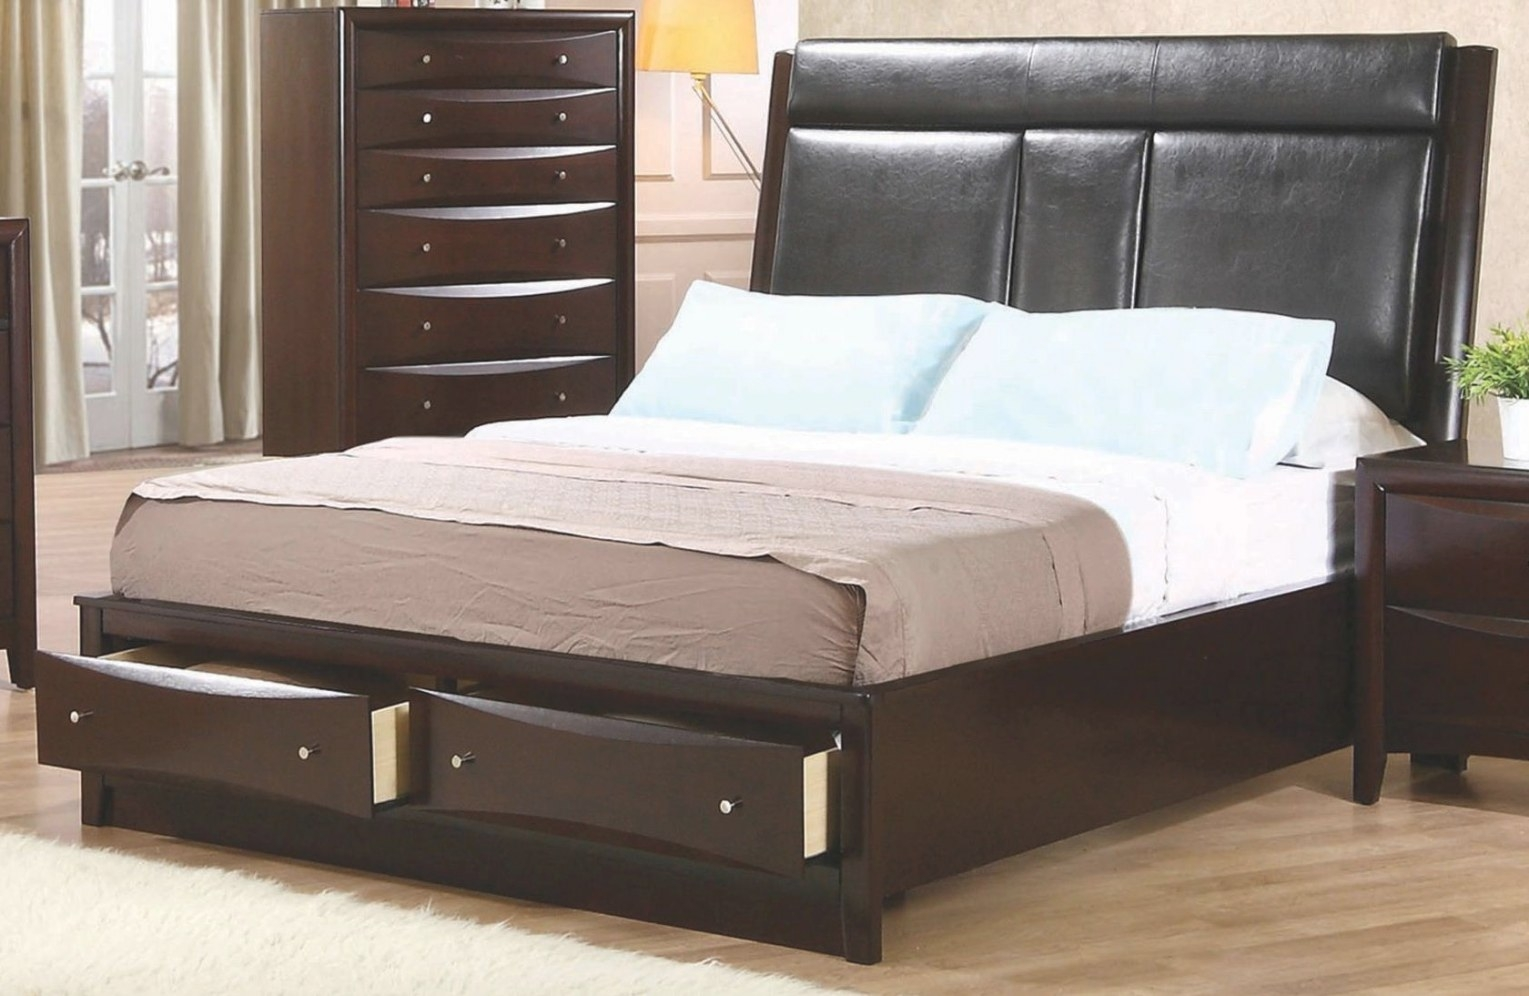 Phoenix Queen Upholstered Storage Platform Bed From with regard to Queen Bed With Storage